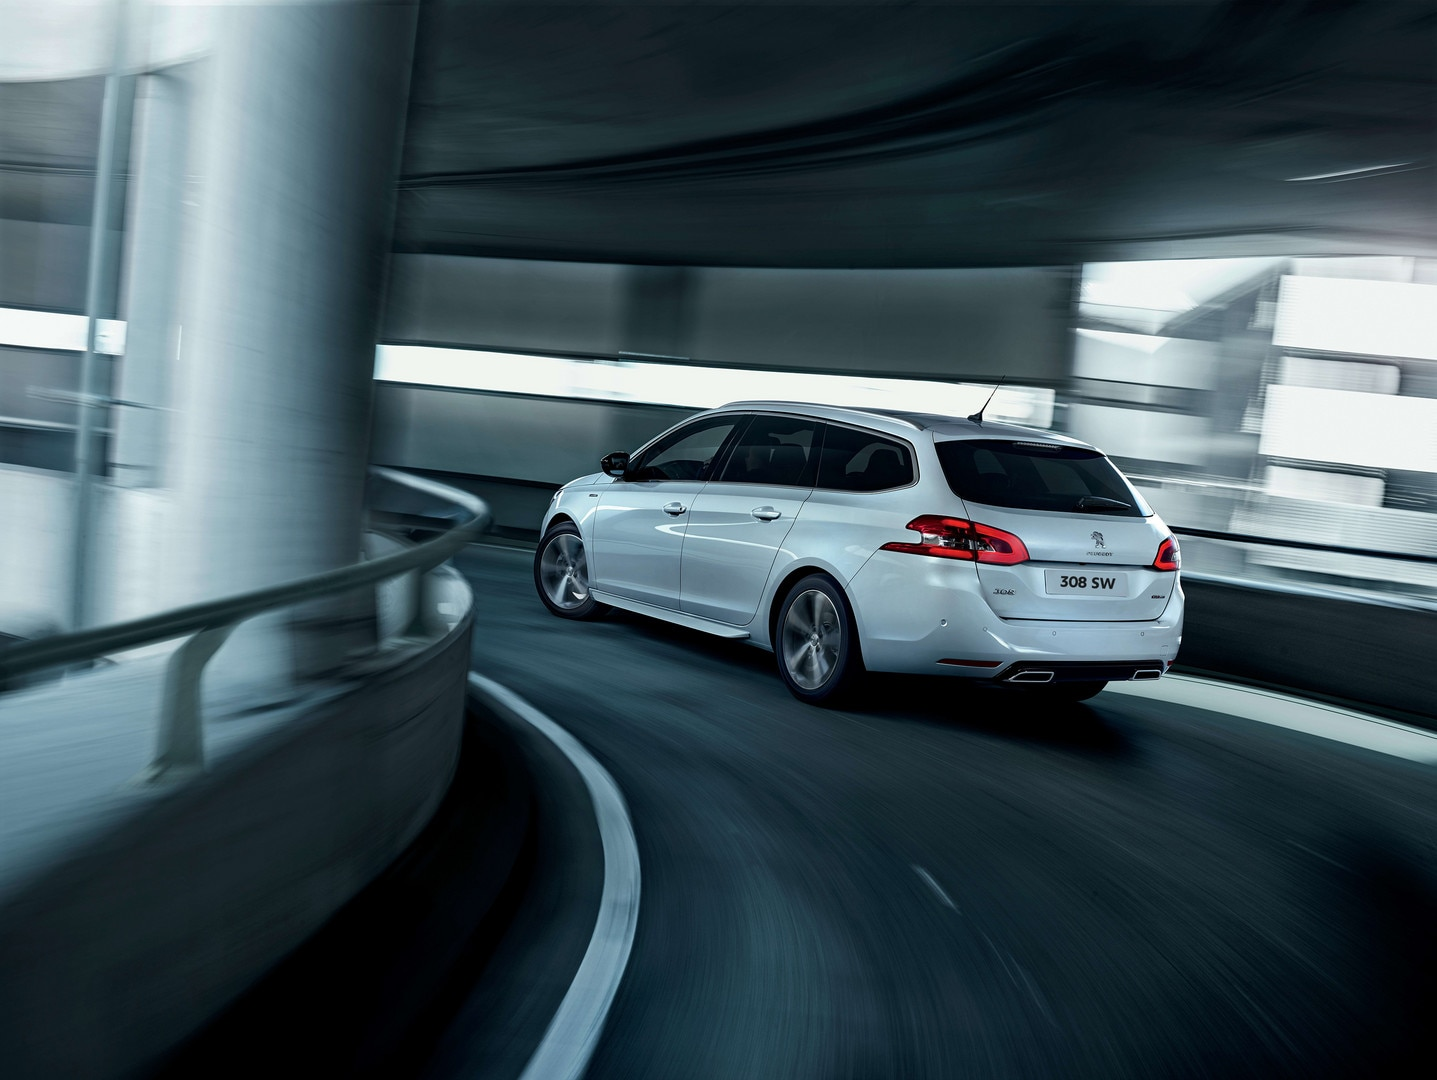 new peugeot 308 sw | discover the family estatepeugeot